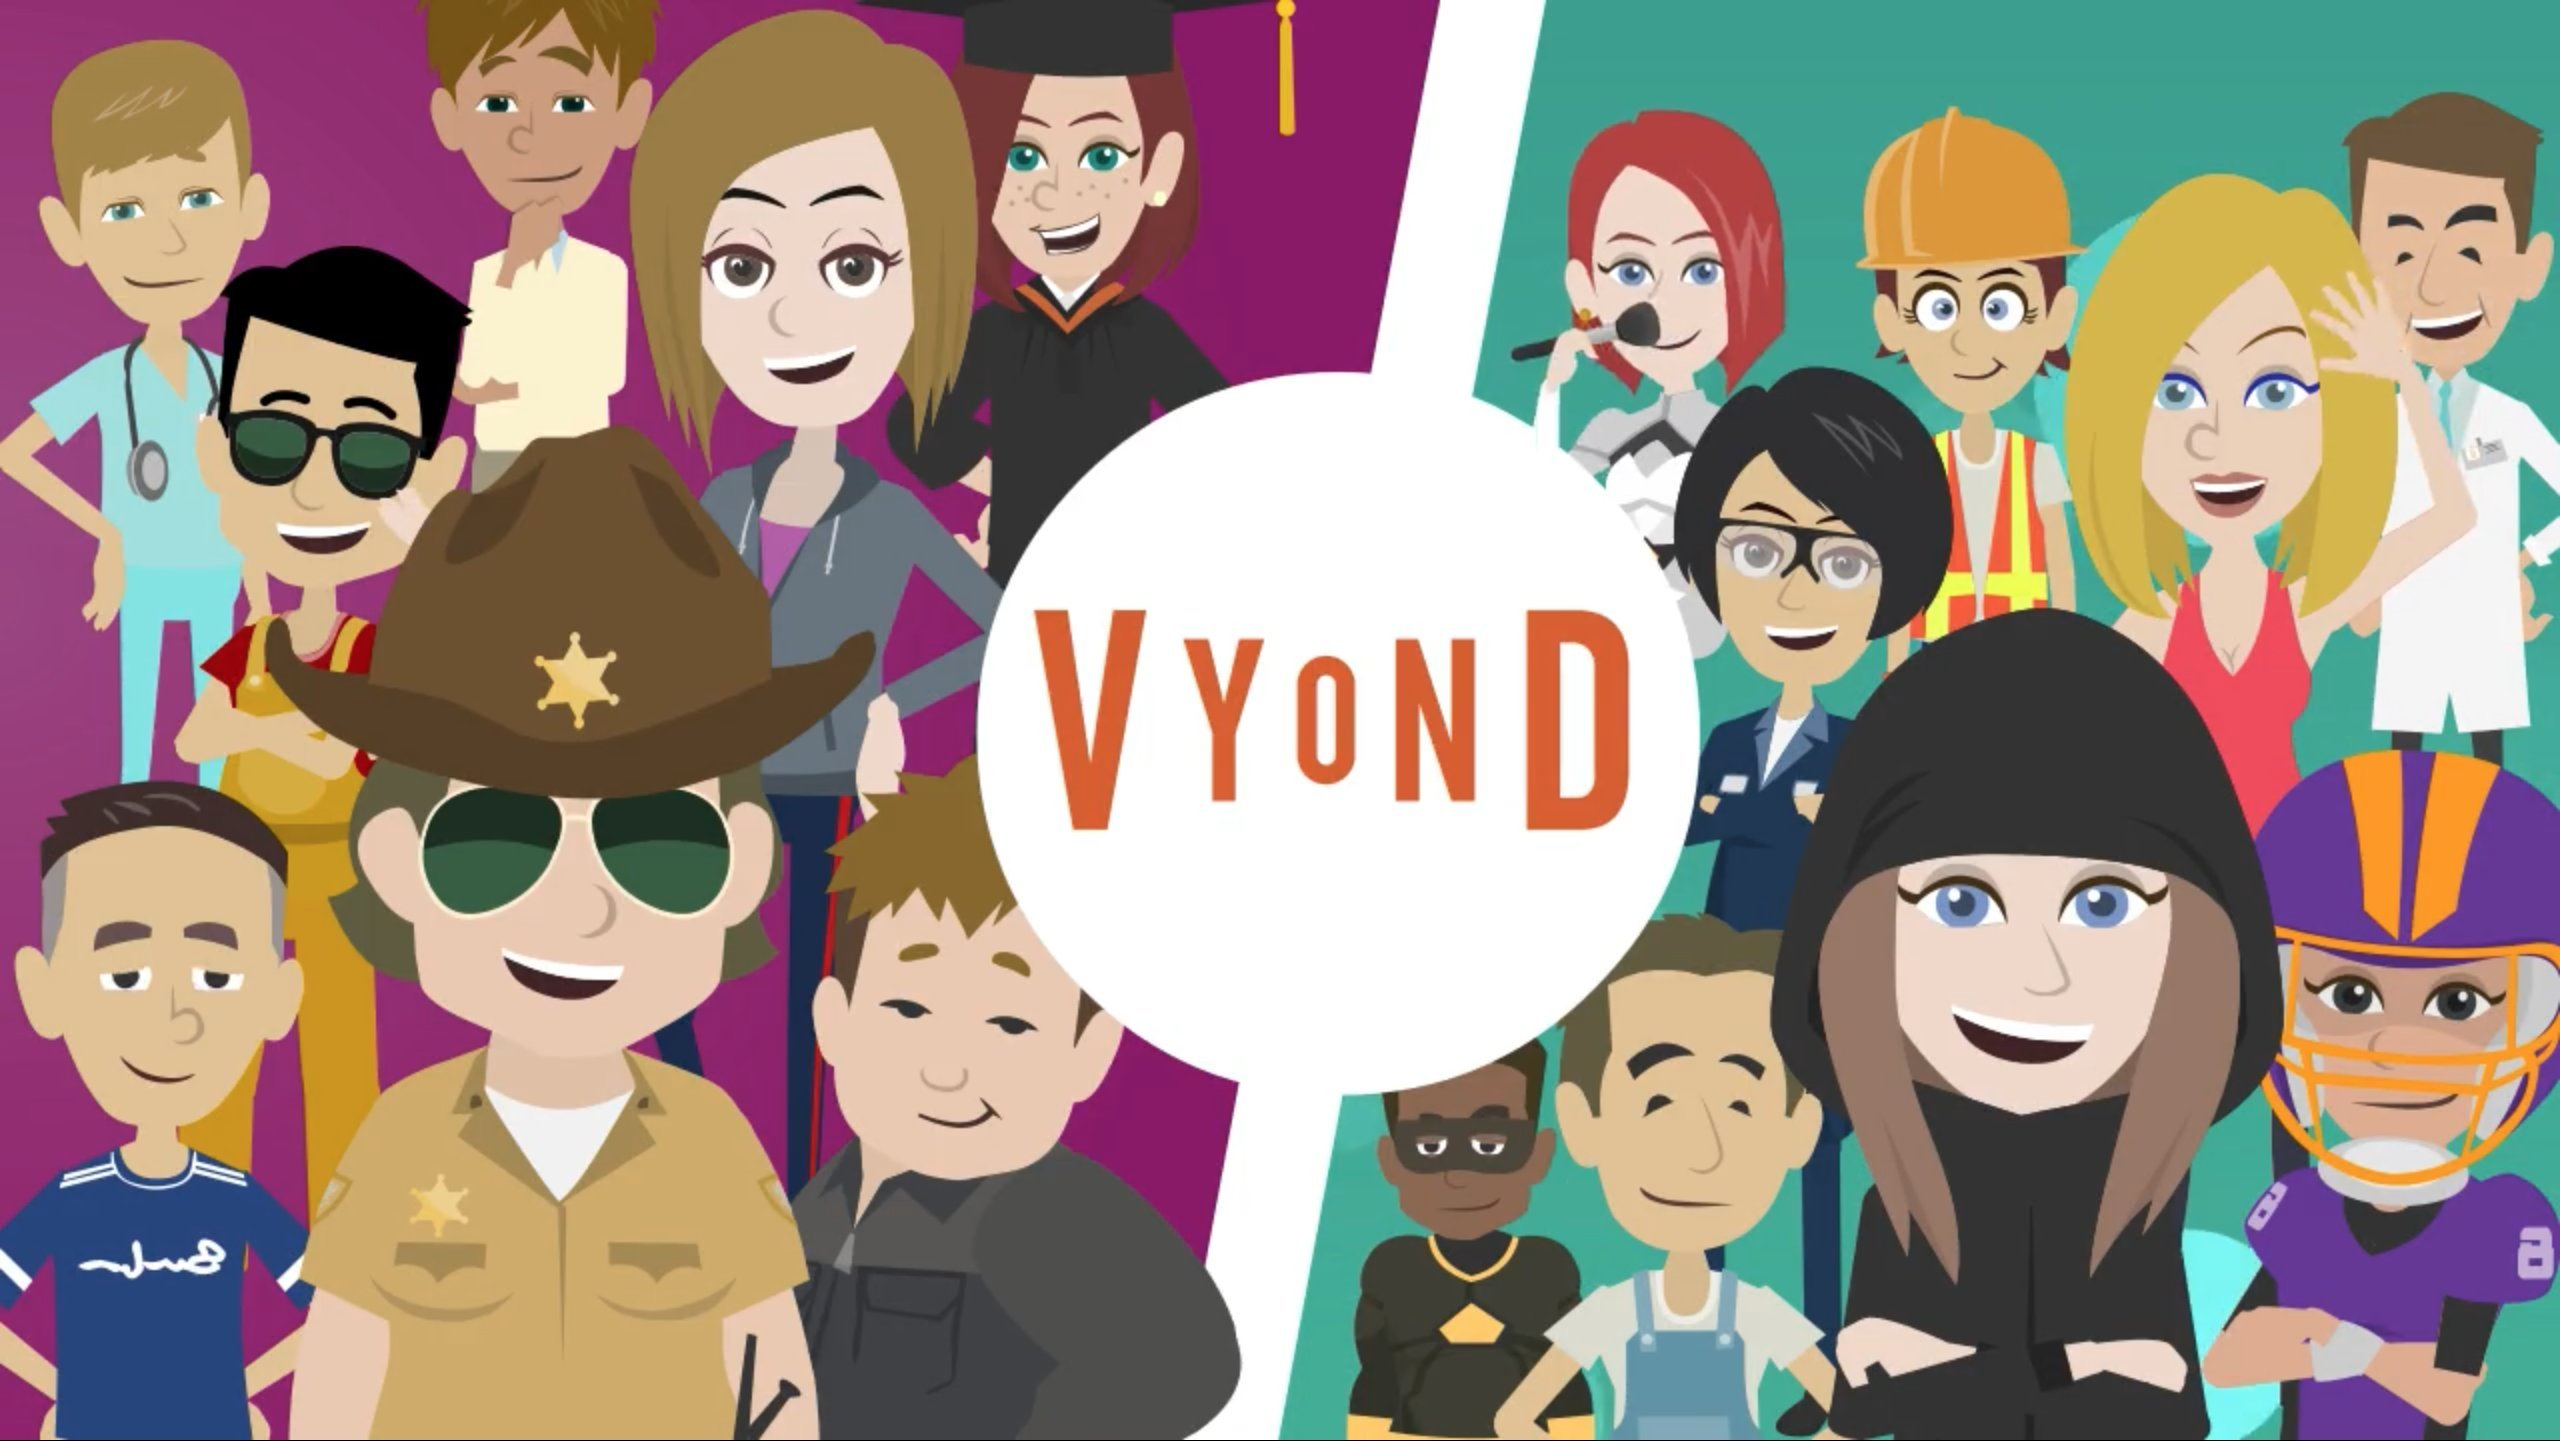 2D CHARACTER ANIMATION with VYOND